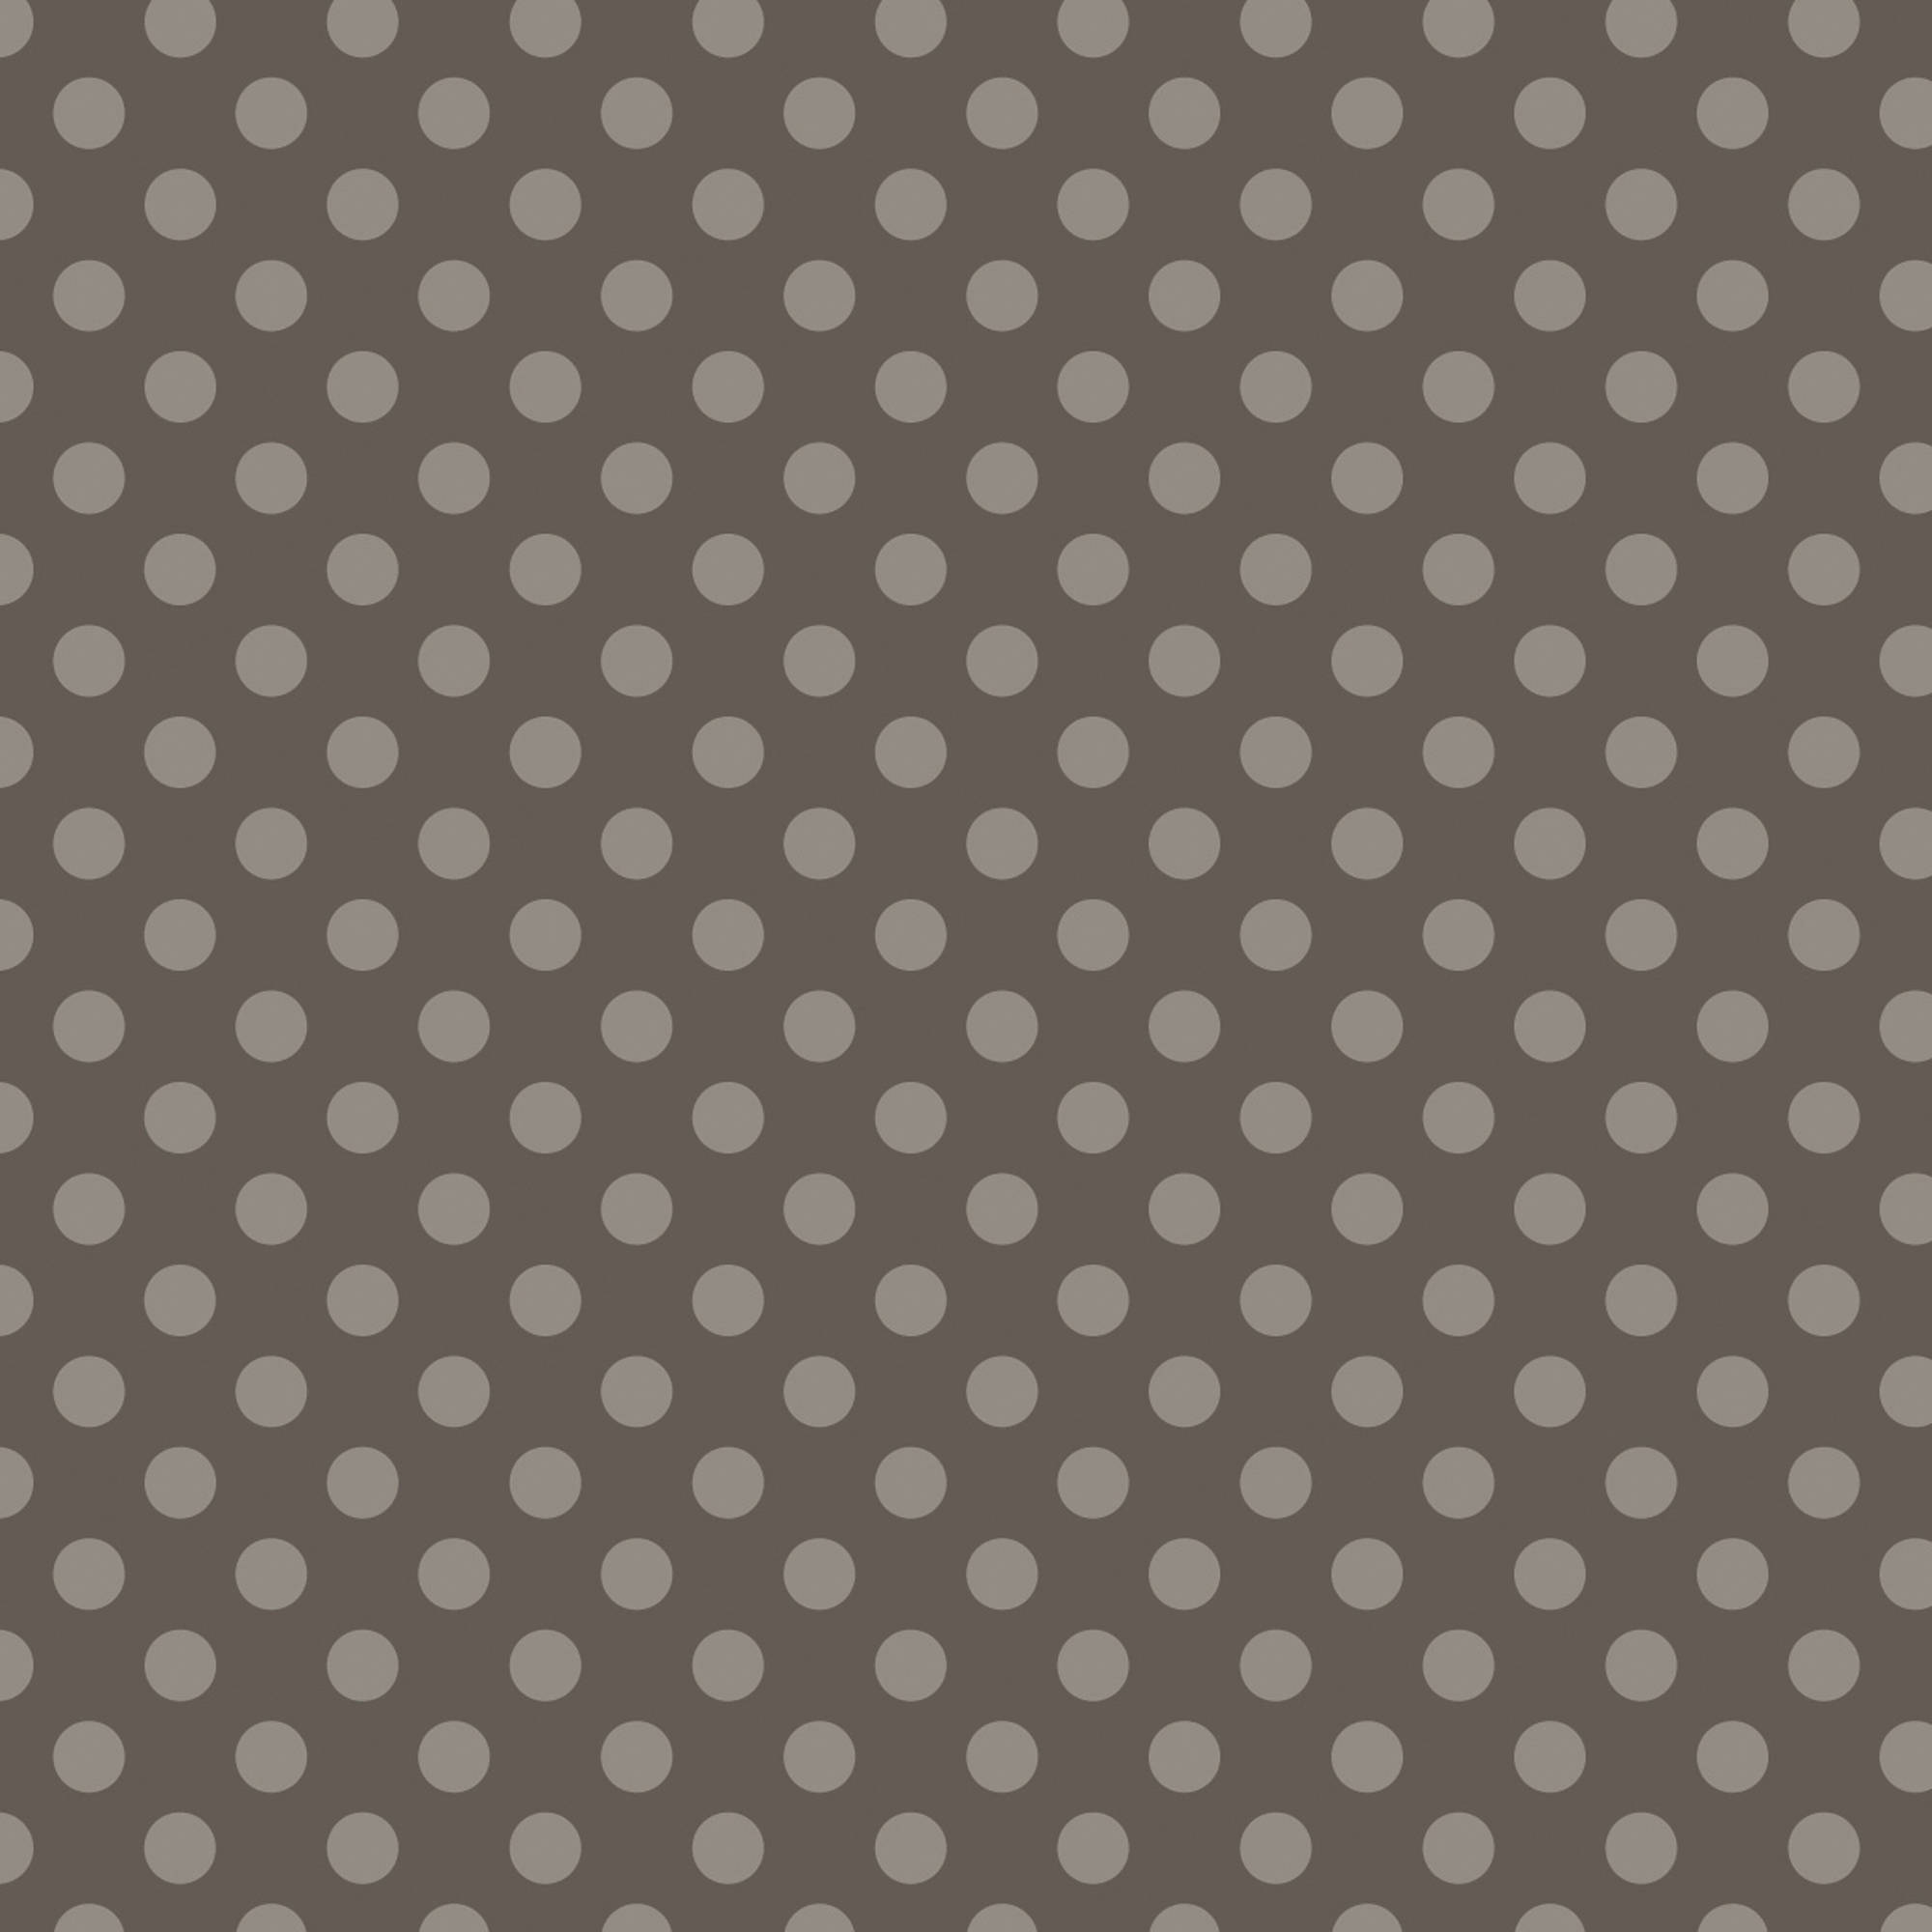 100% Cotton Fabric For Quilting And Crafting By Emma And Mila From The Hot Coco Collection: Tonal Dot Grey